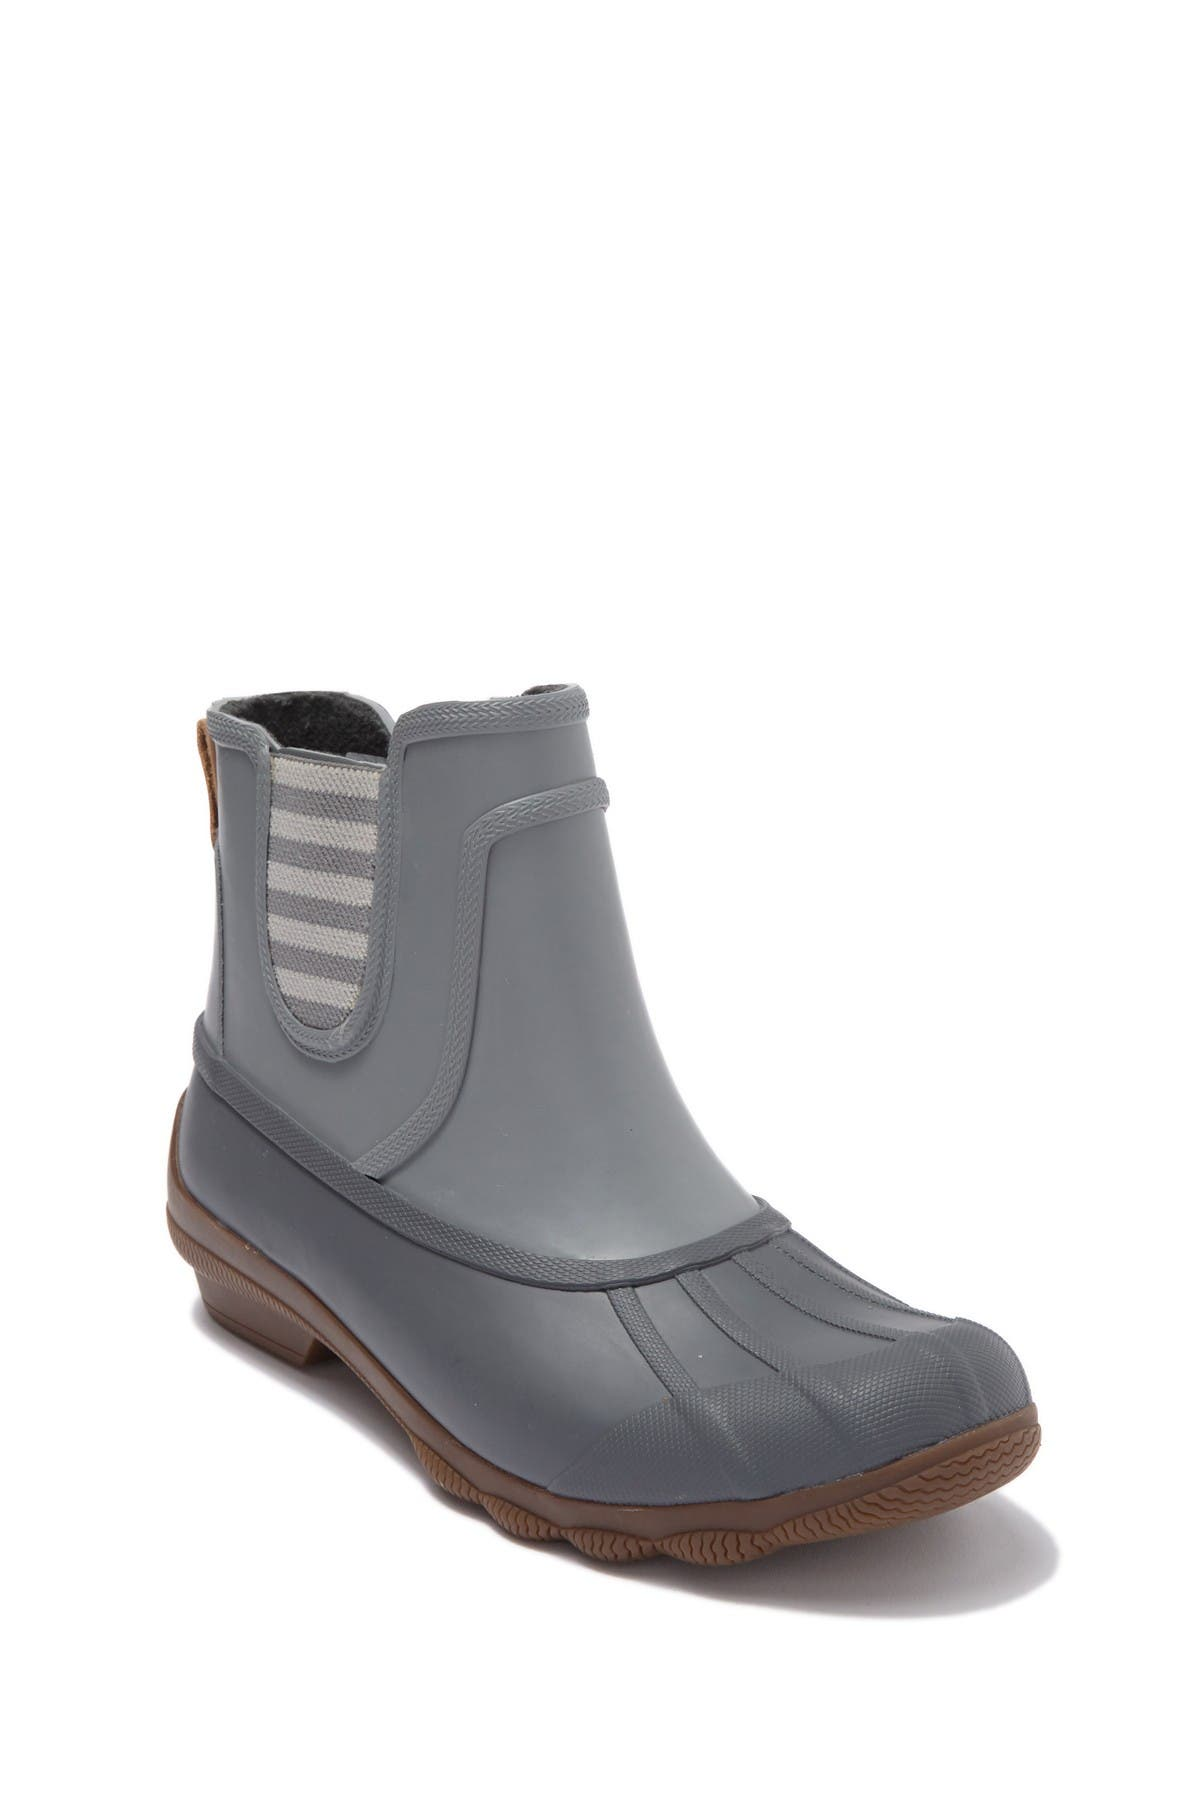 Image of Sperry Syren Cove Rubberized Chelsea Boot